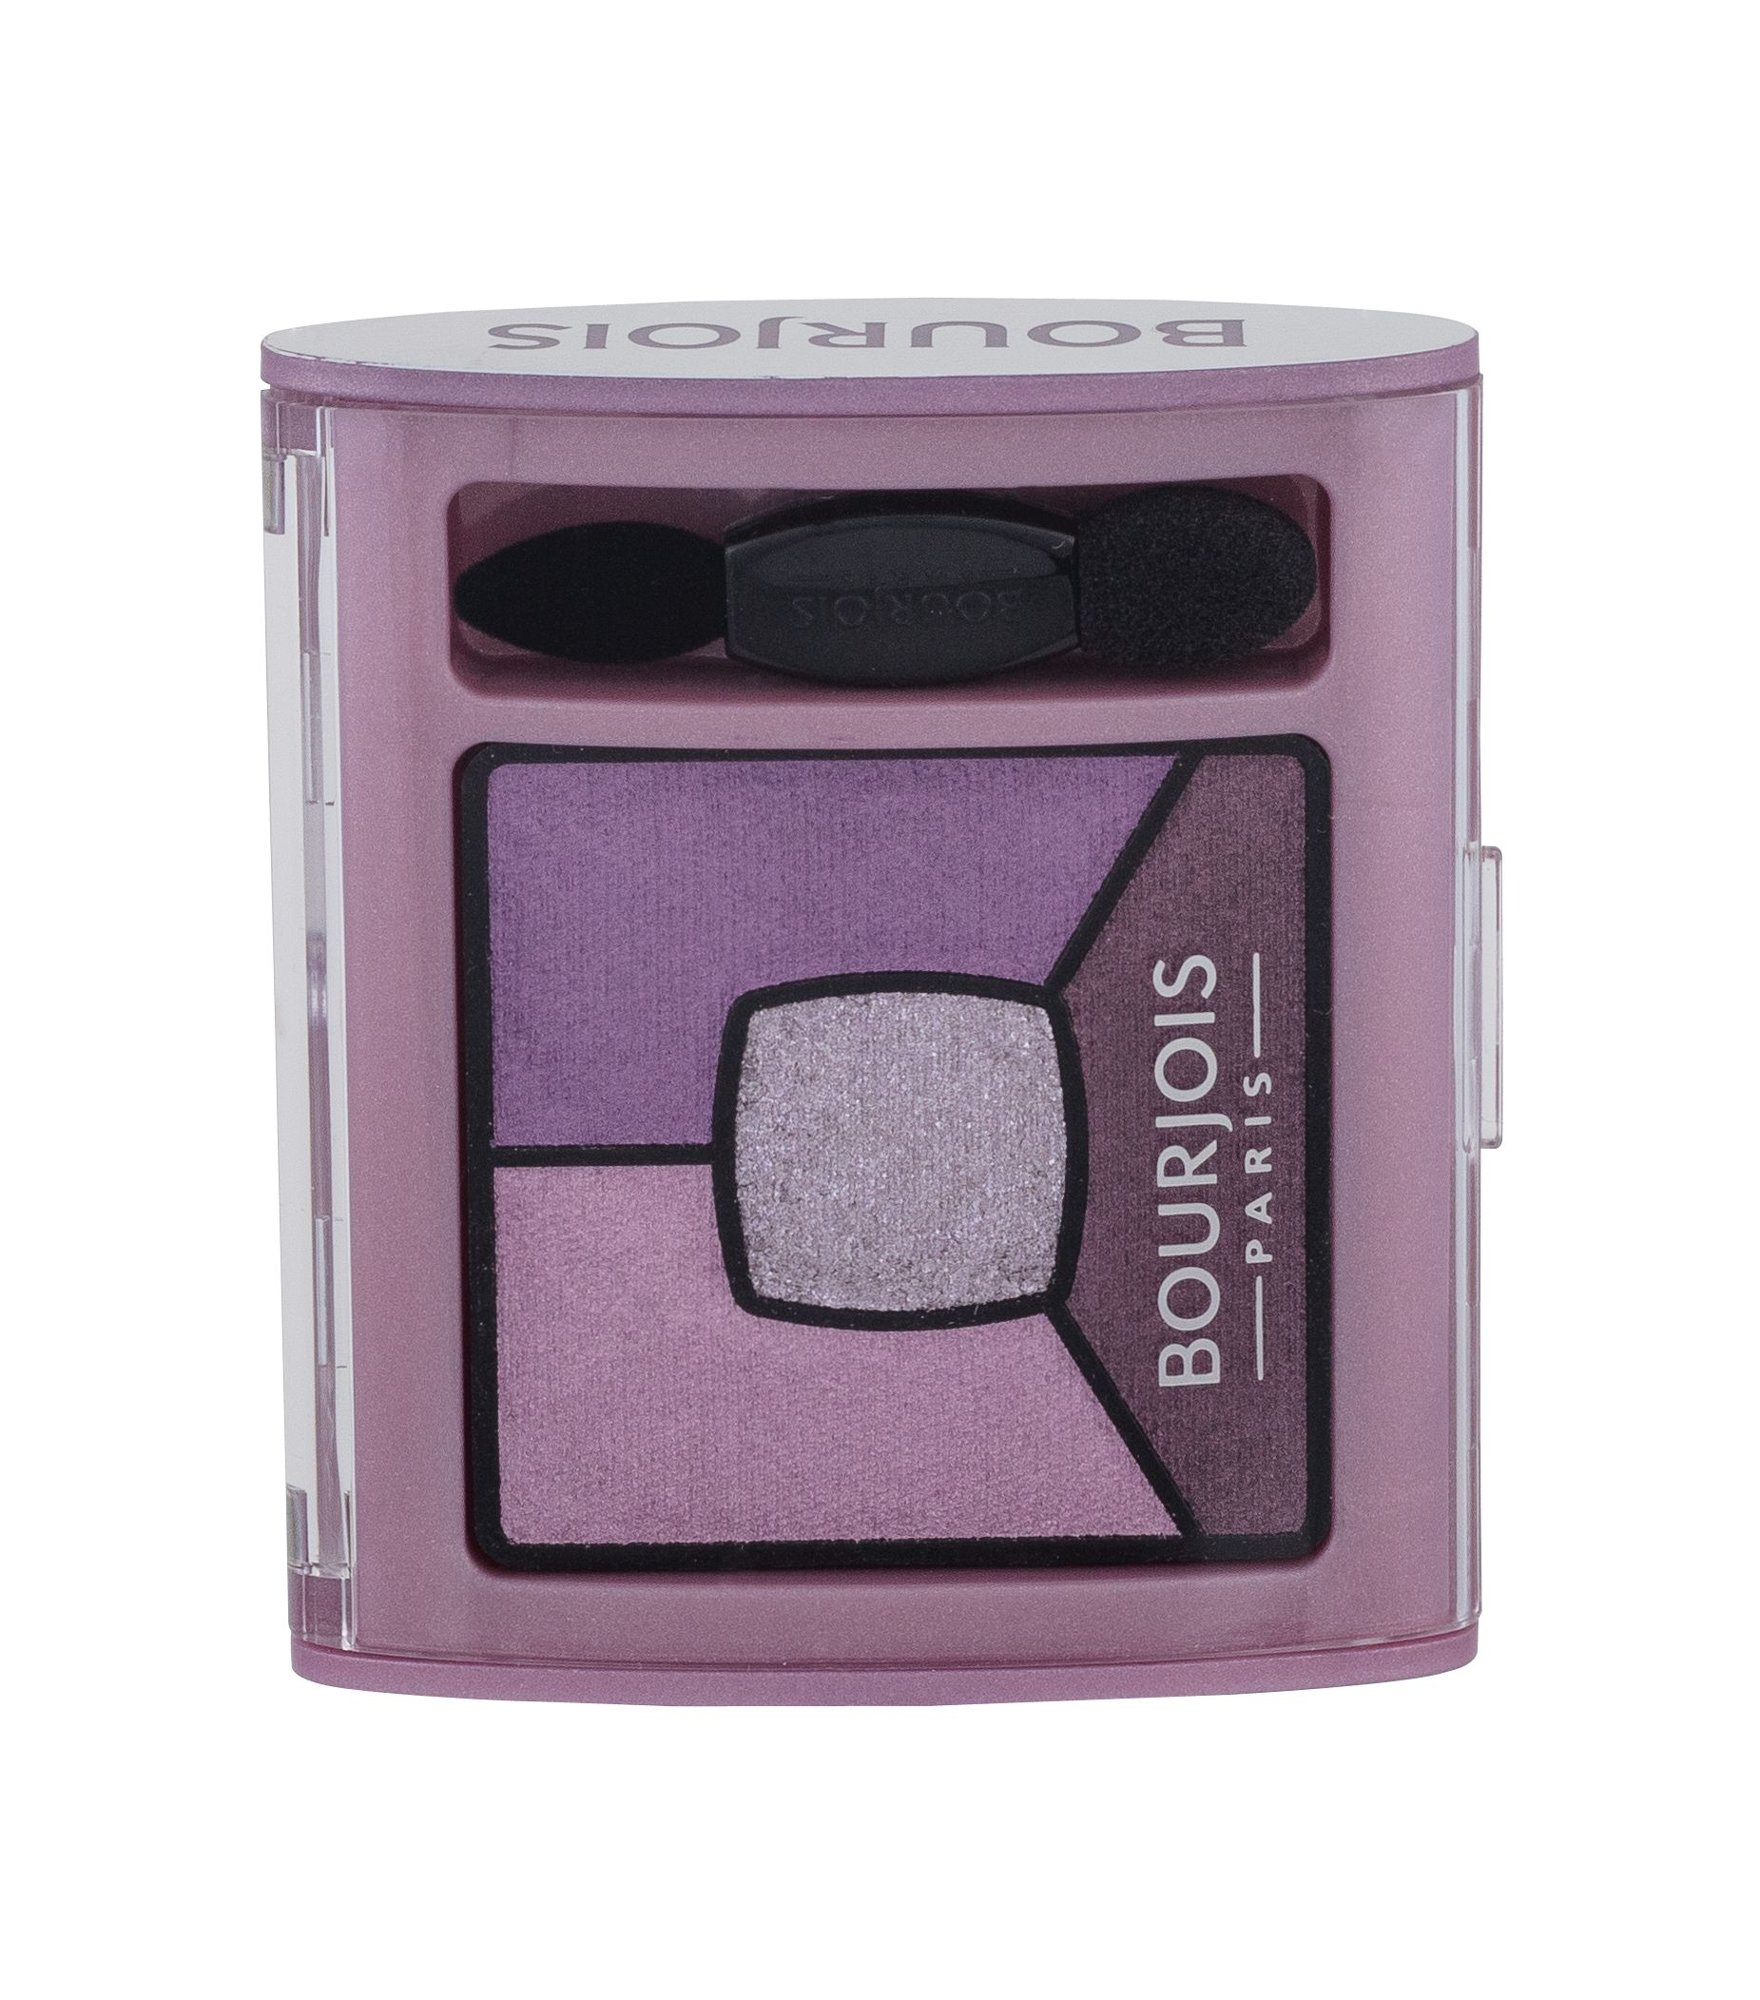 Akių šešėlis BOURJOIS Paris Smoky Stories Quad Eyeshadow Palette